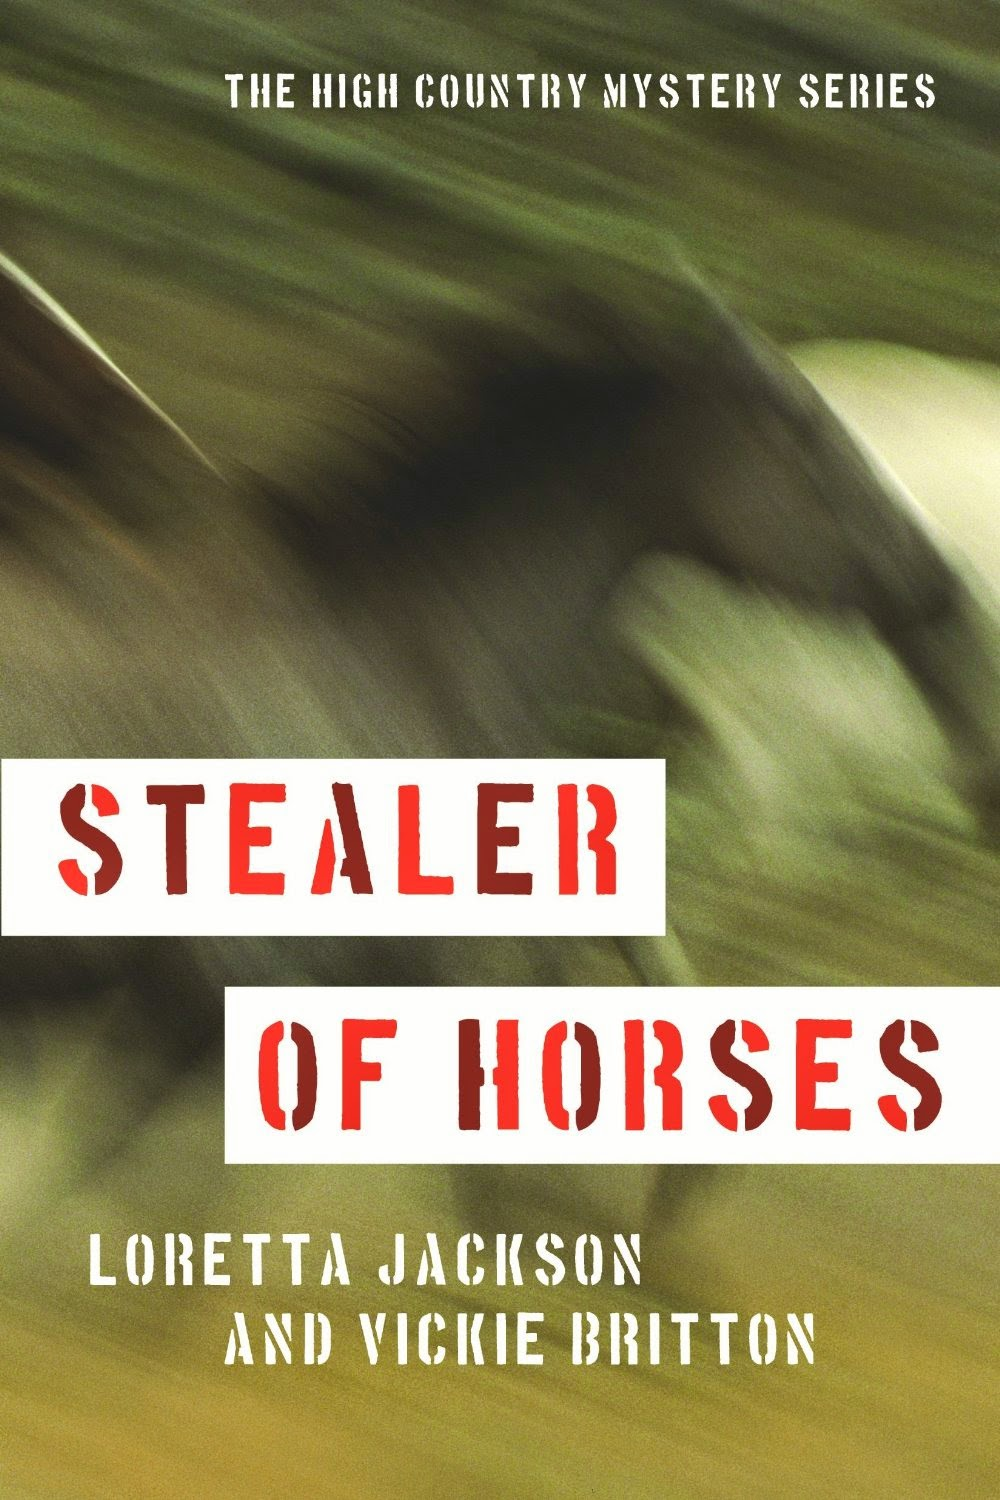 STEALER OF HORSES--Special Price $2.49!